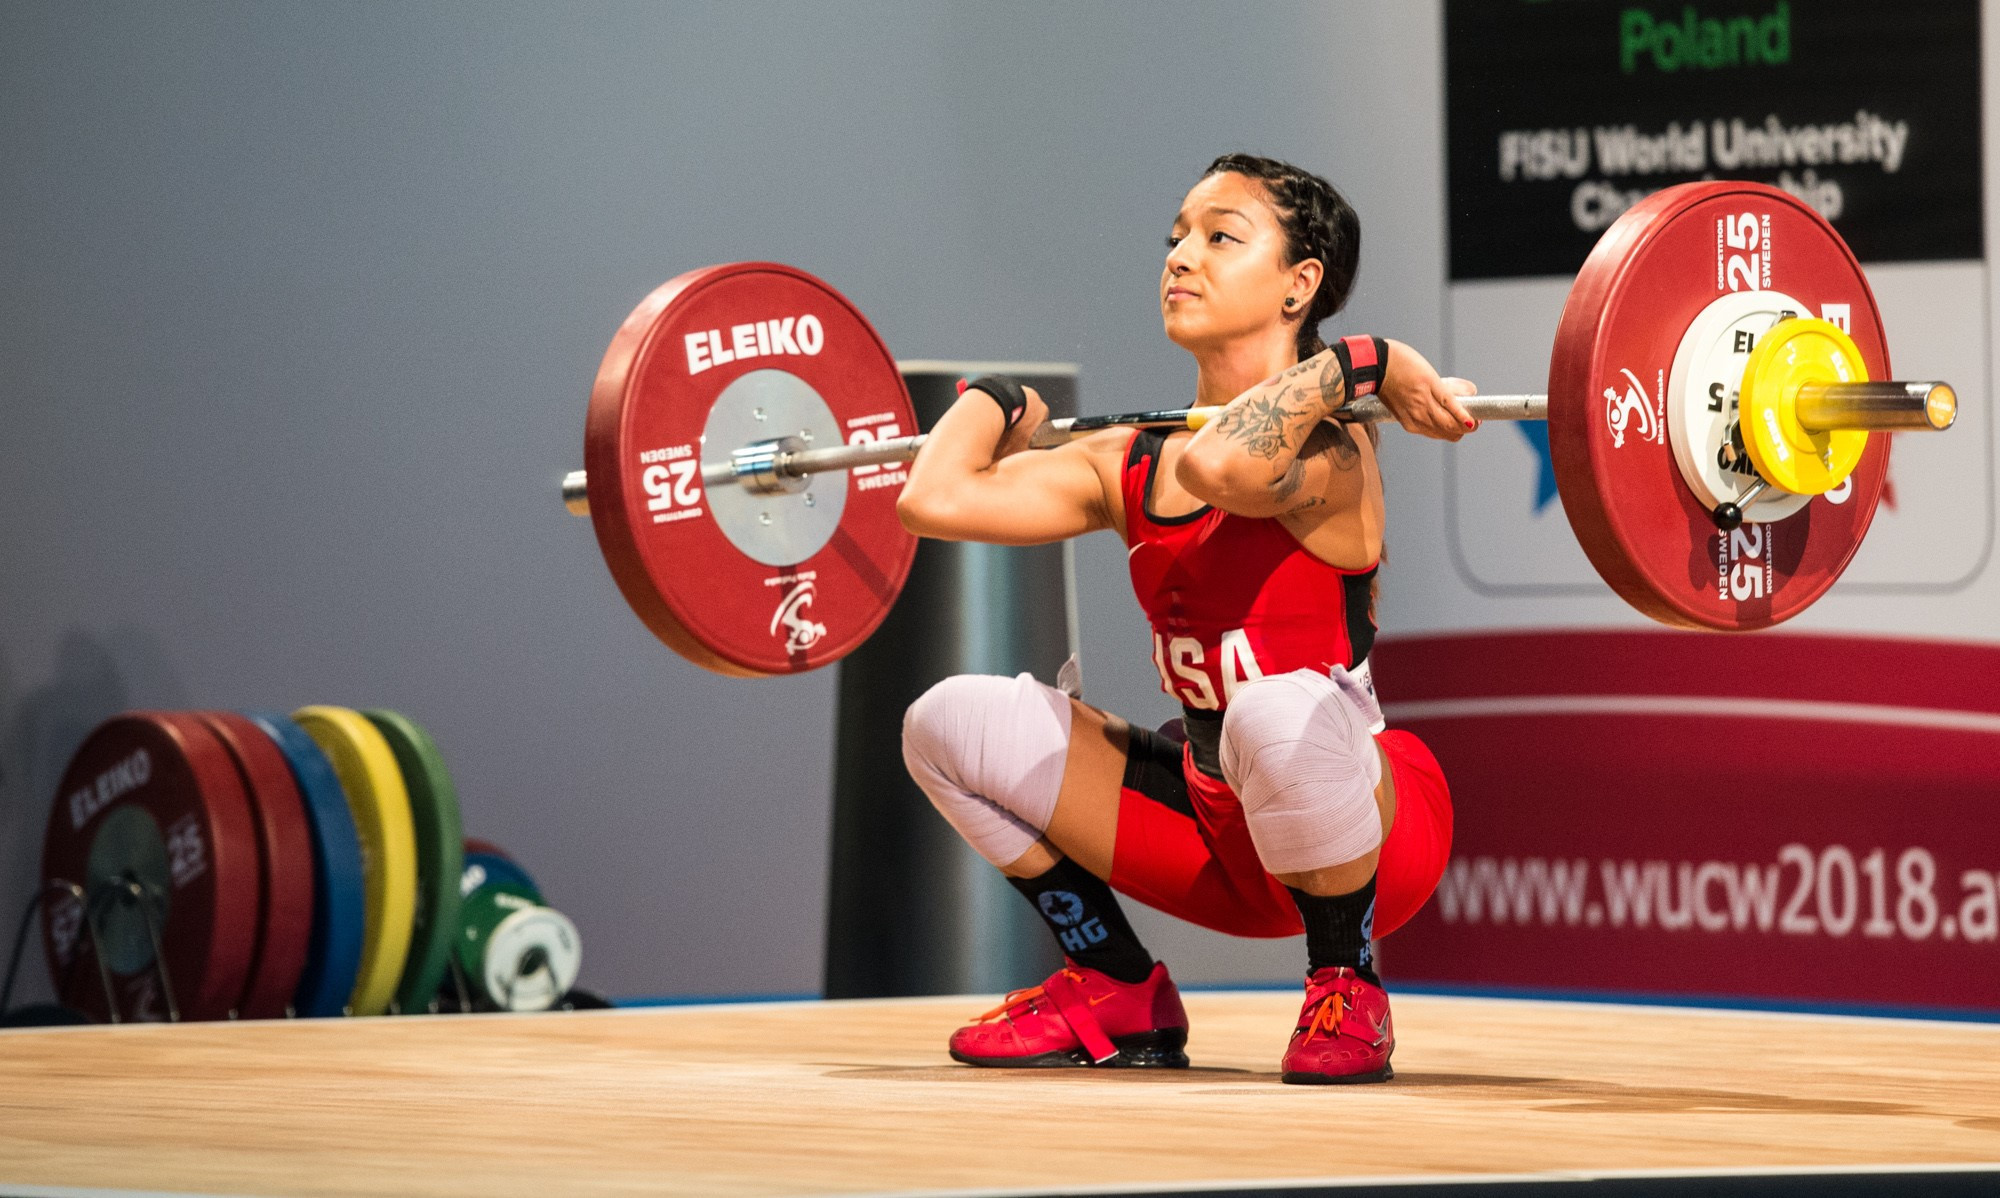 Japan dominate opening day of action at FISU World University Weightlifting Championships